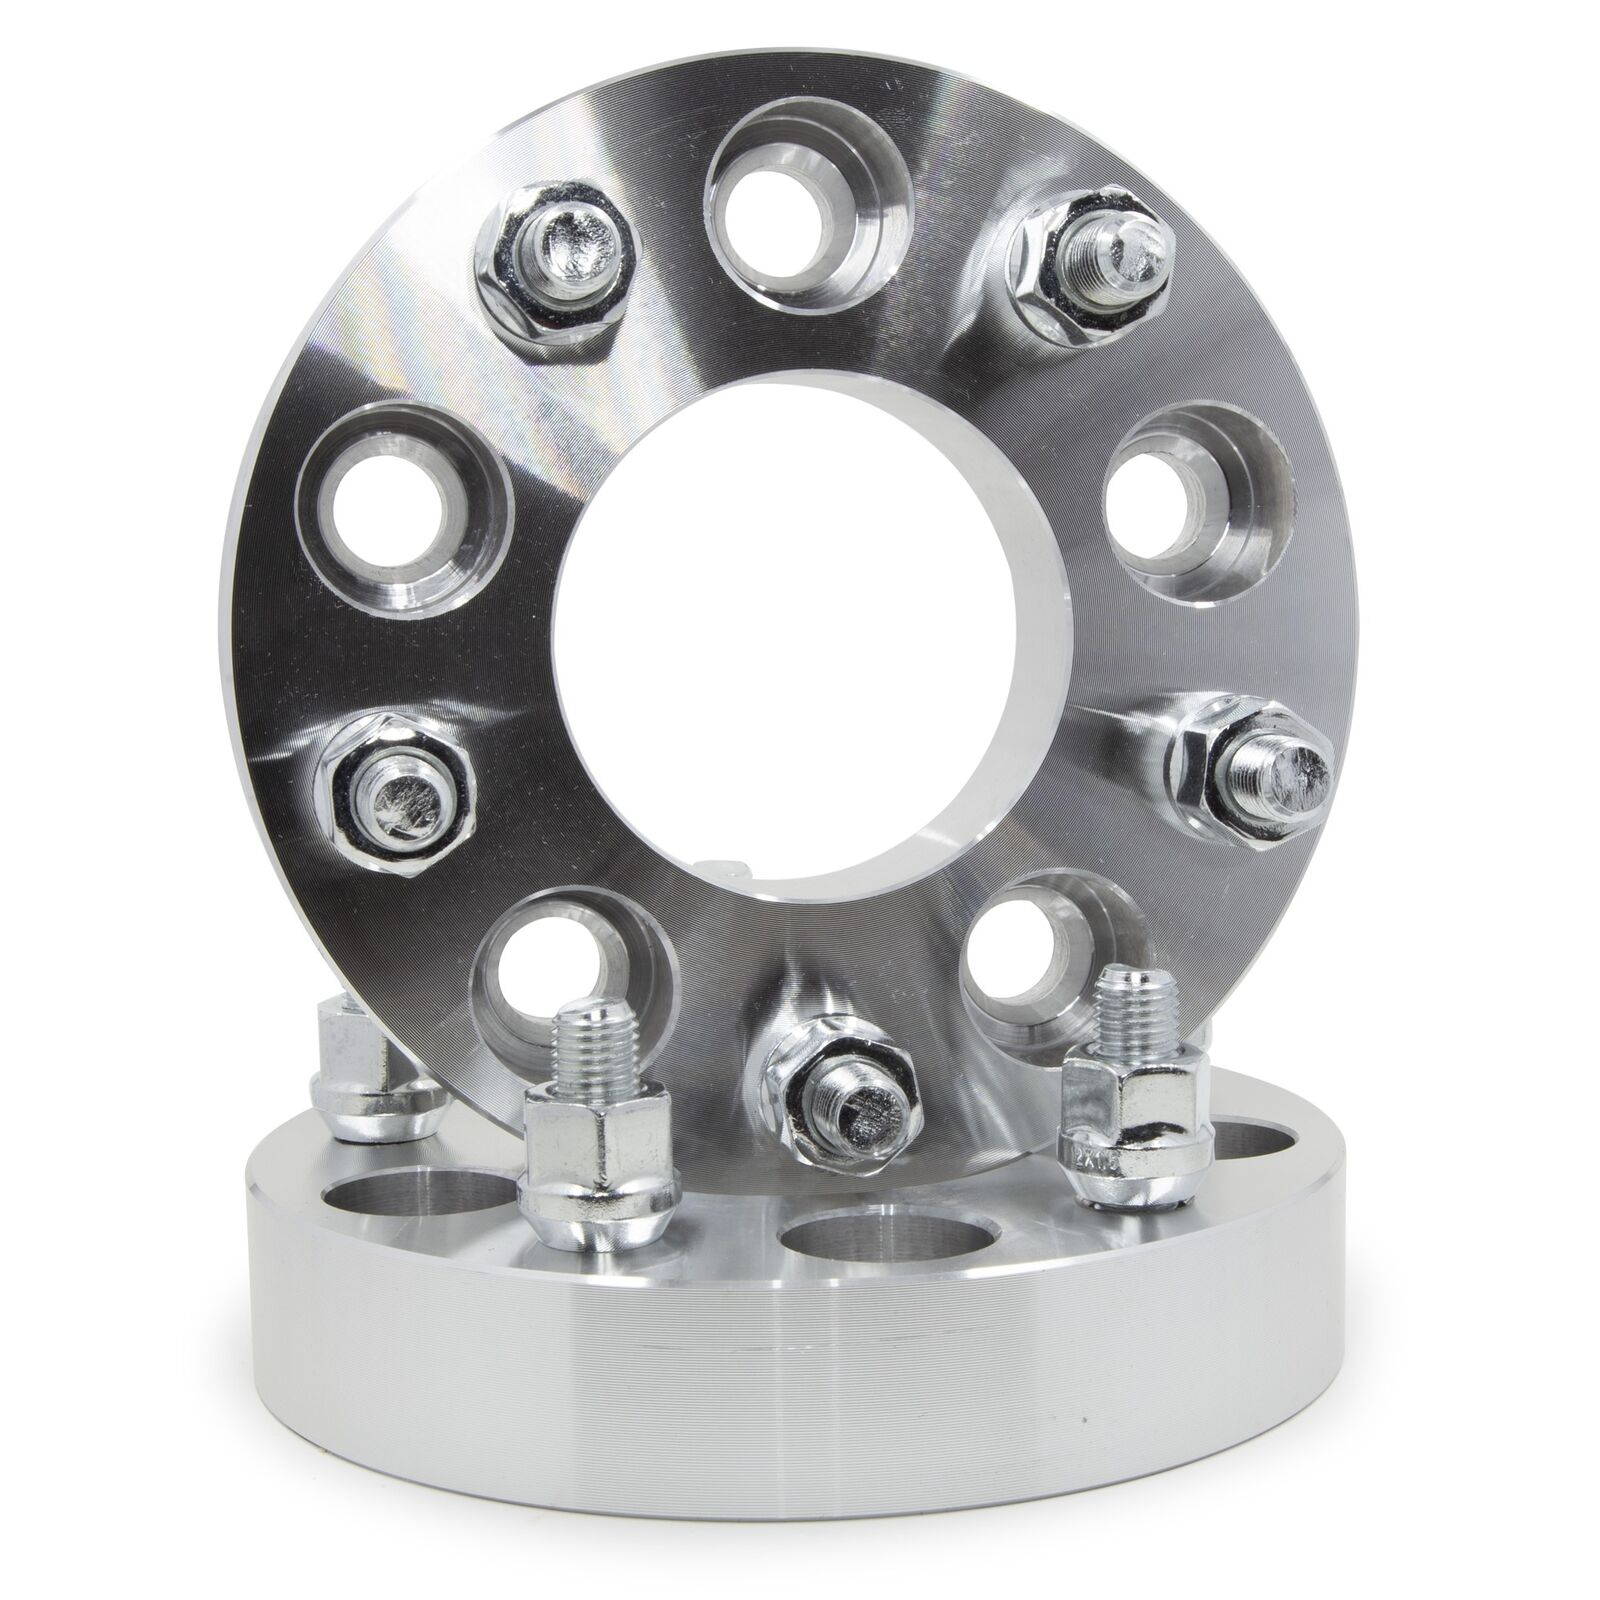 4 WHEEL SPACERS ADAPTERS 5X4.5 TO 5X4.75 1.25 INCH THICK 5X114.3 TO 5X120 12X1.5